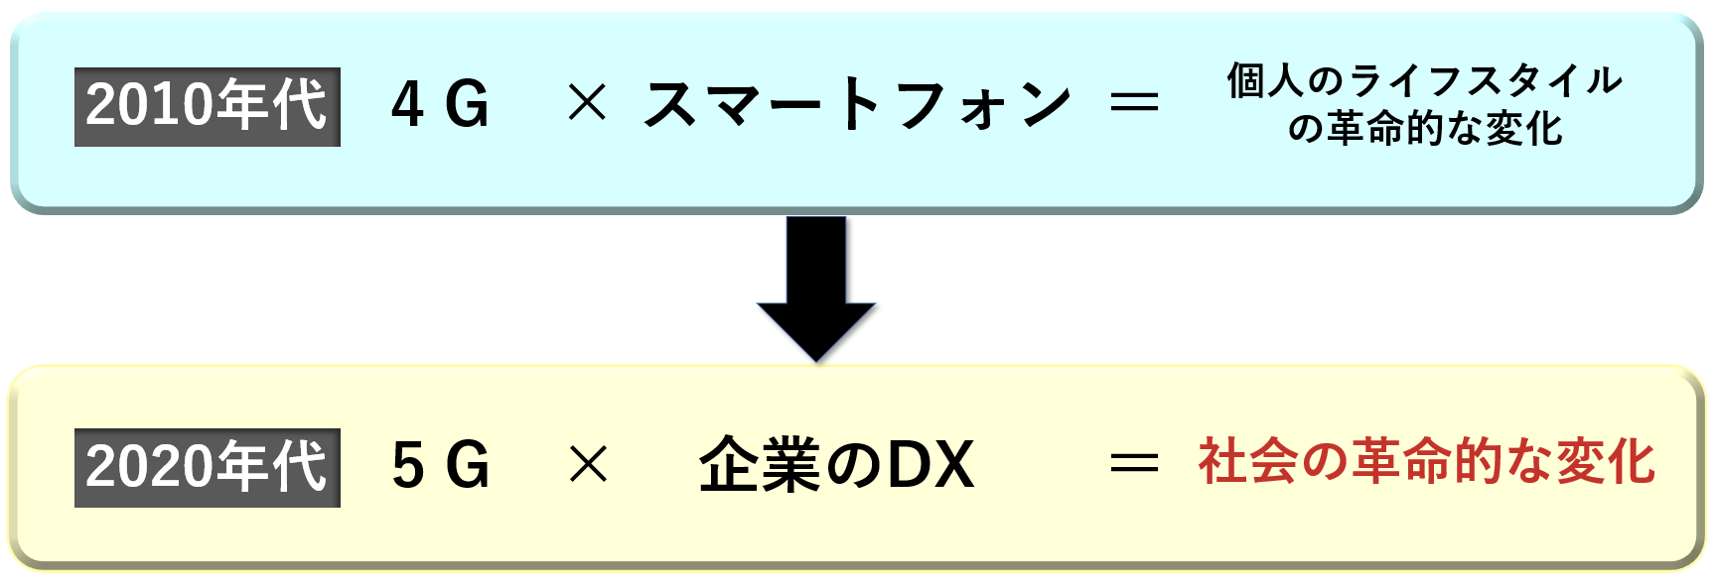 4Gと5G